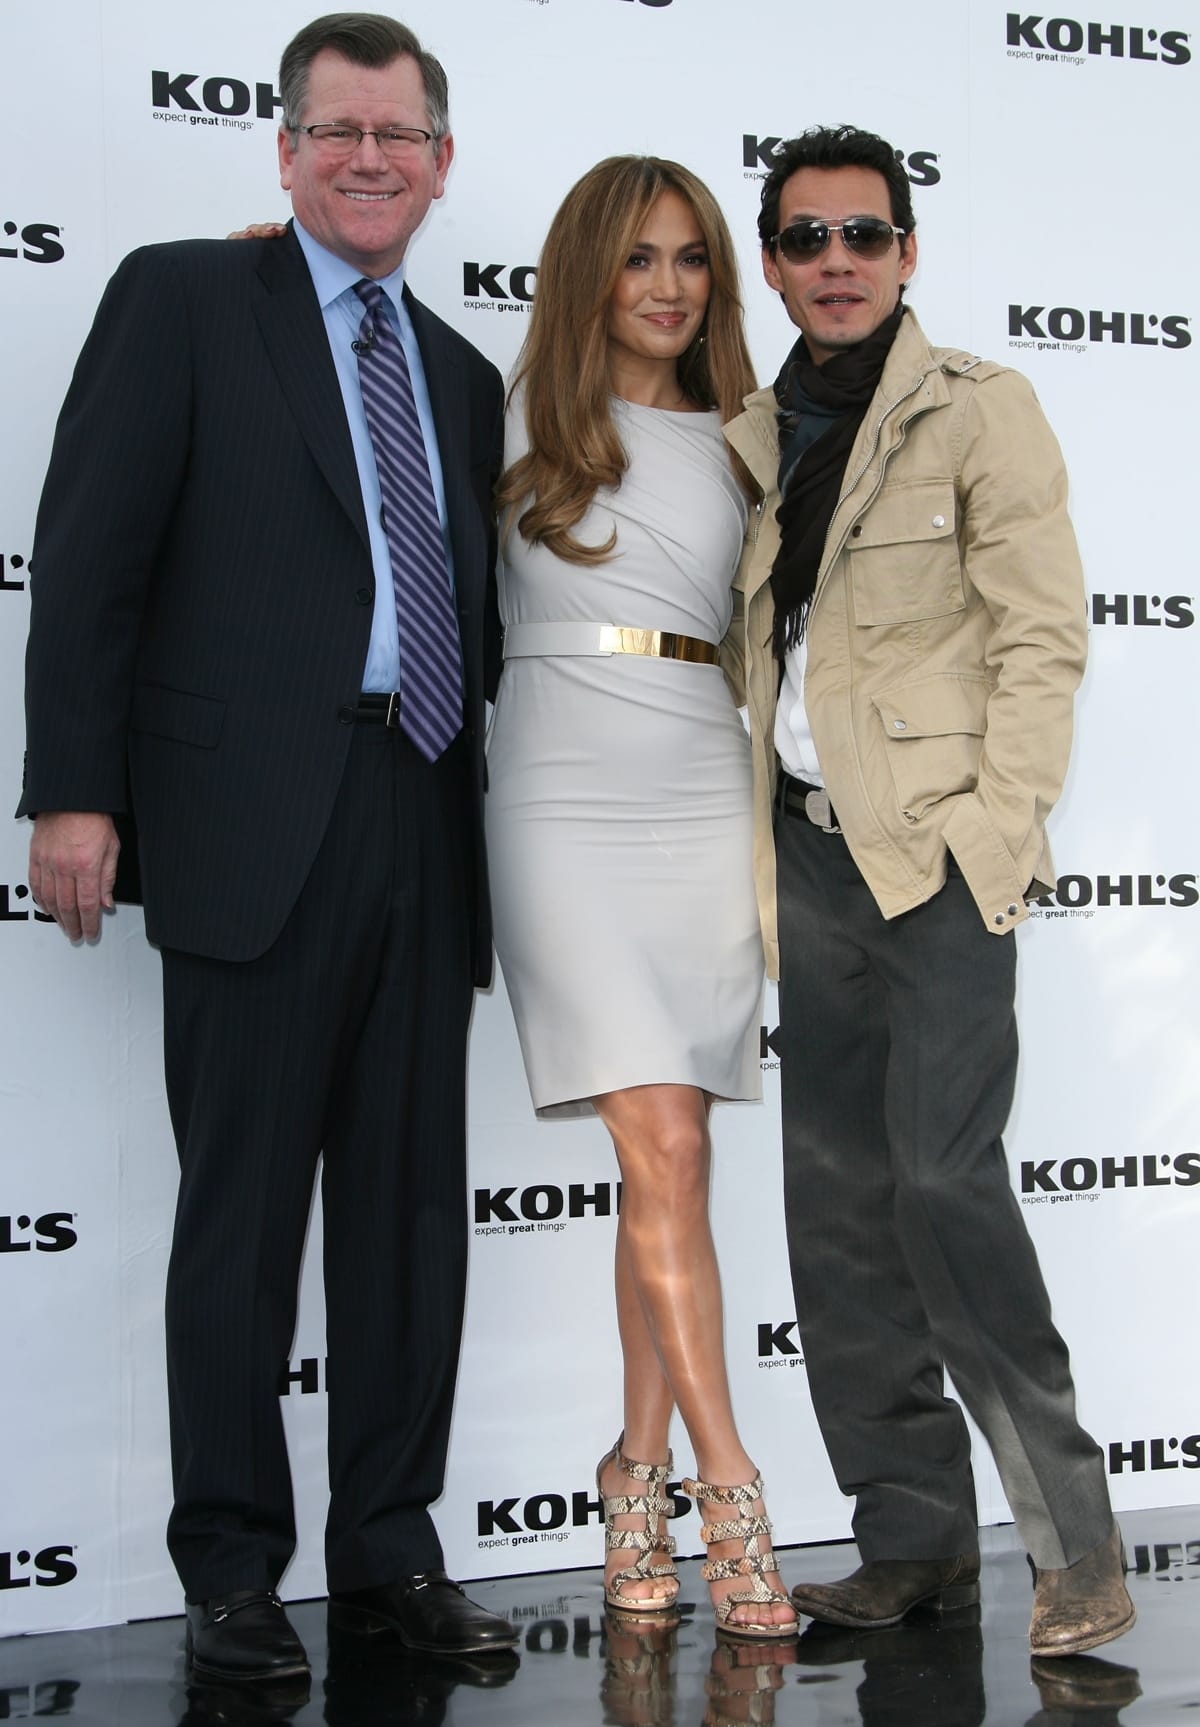 Don Brennan, Kohl's Senior Executive Vice President, announced the launch of two multi-department contemporary lifestyle brands with Jennifer Lopez and Marc Anthony